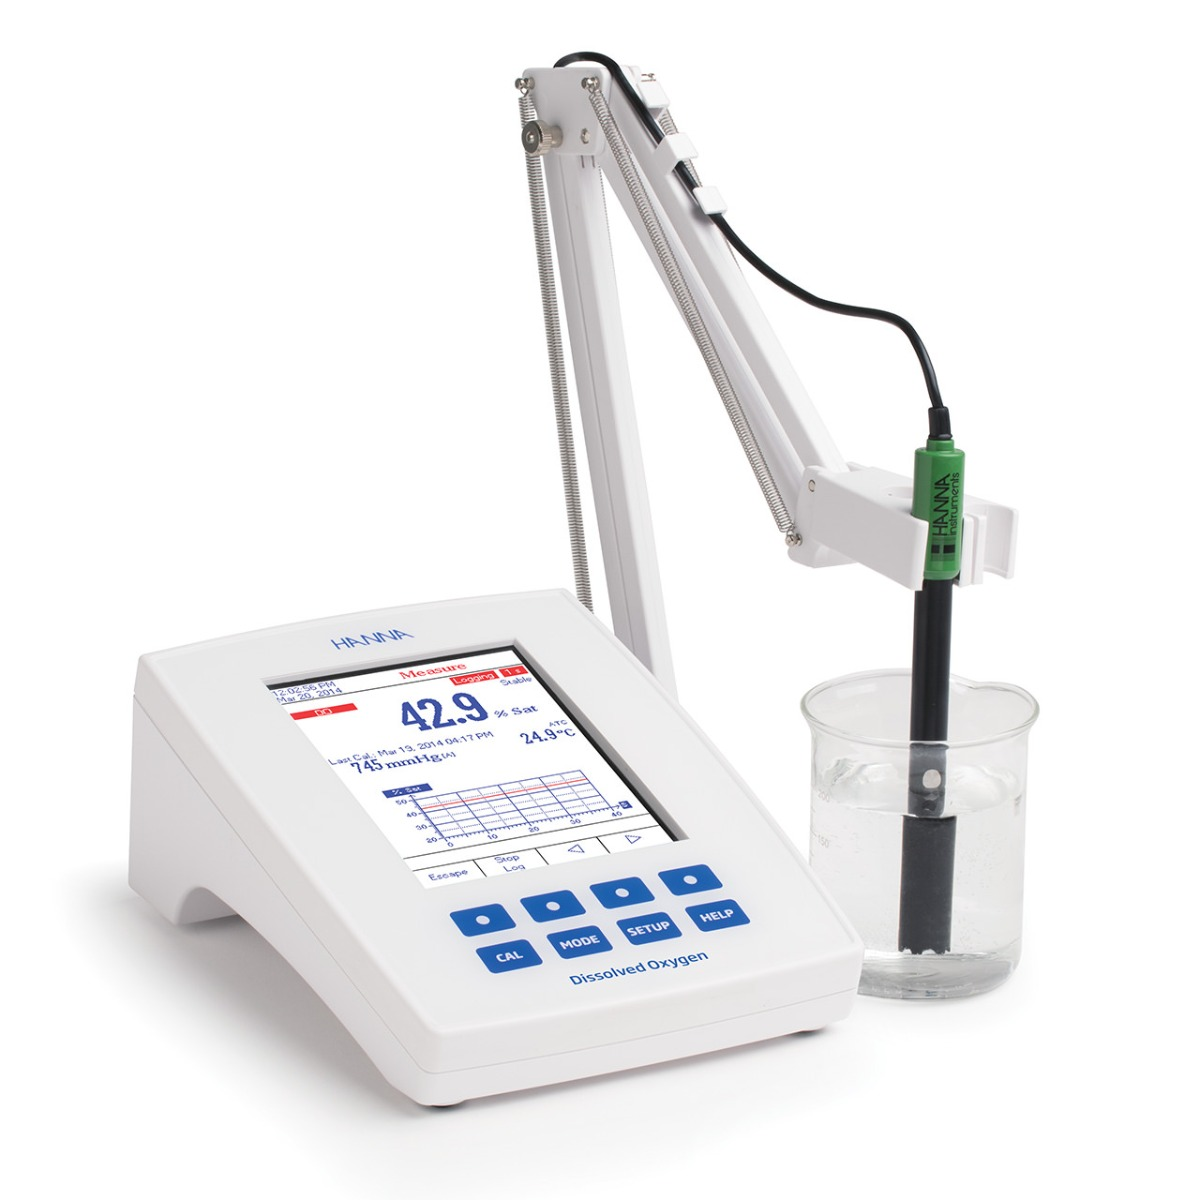 Laboratory Research Grade Benchtop Dissolved Oxygen and BOD Meter - HI5421